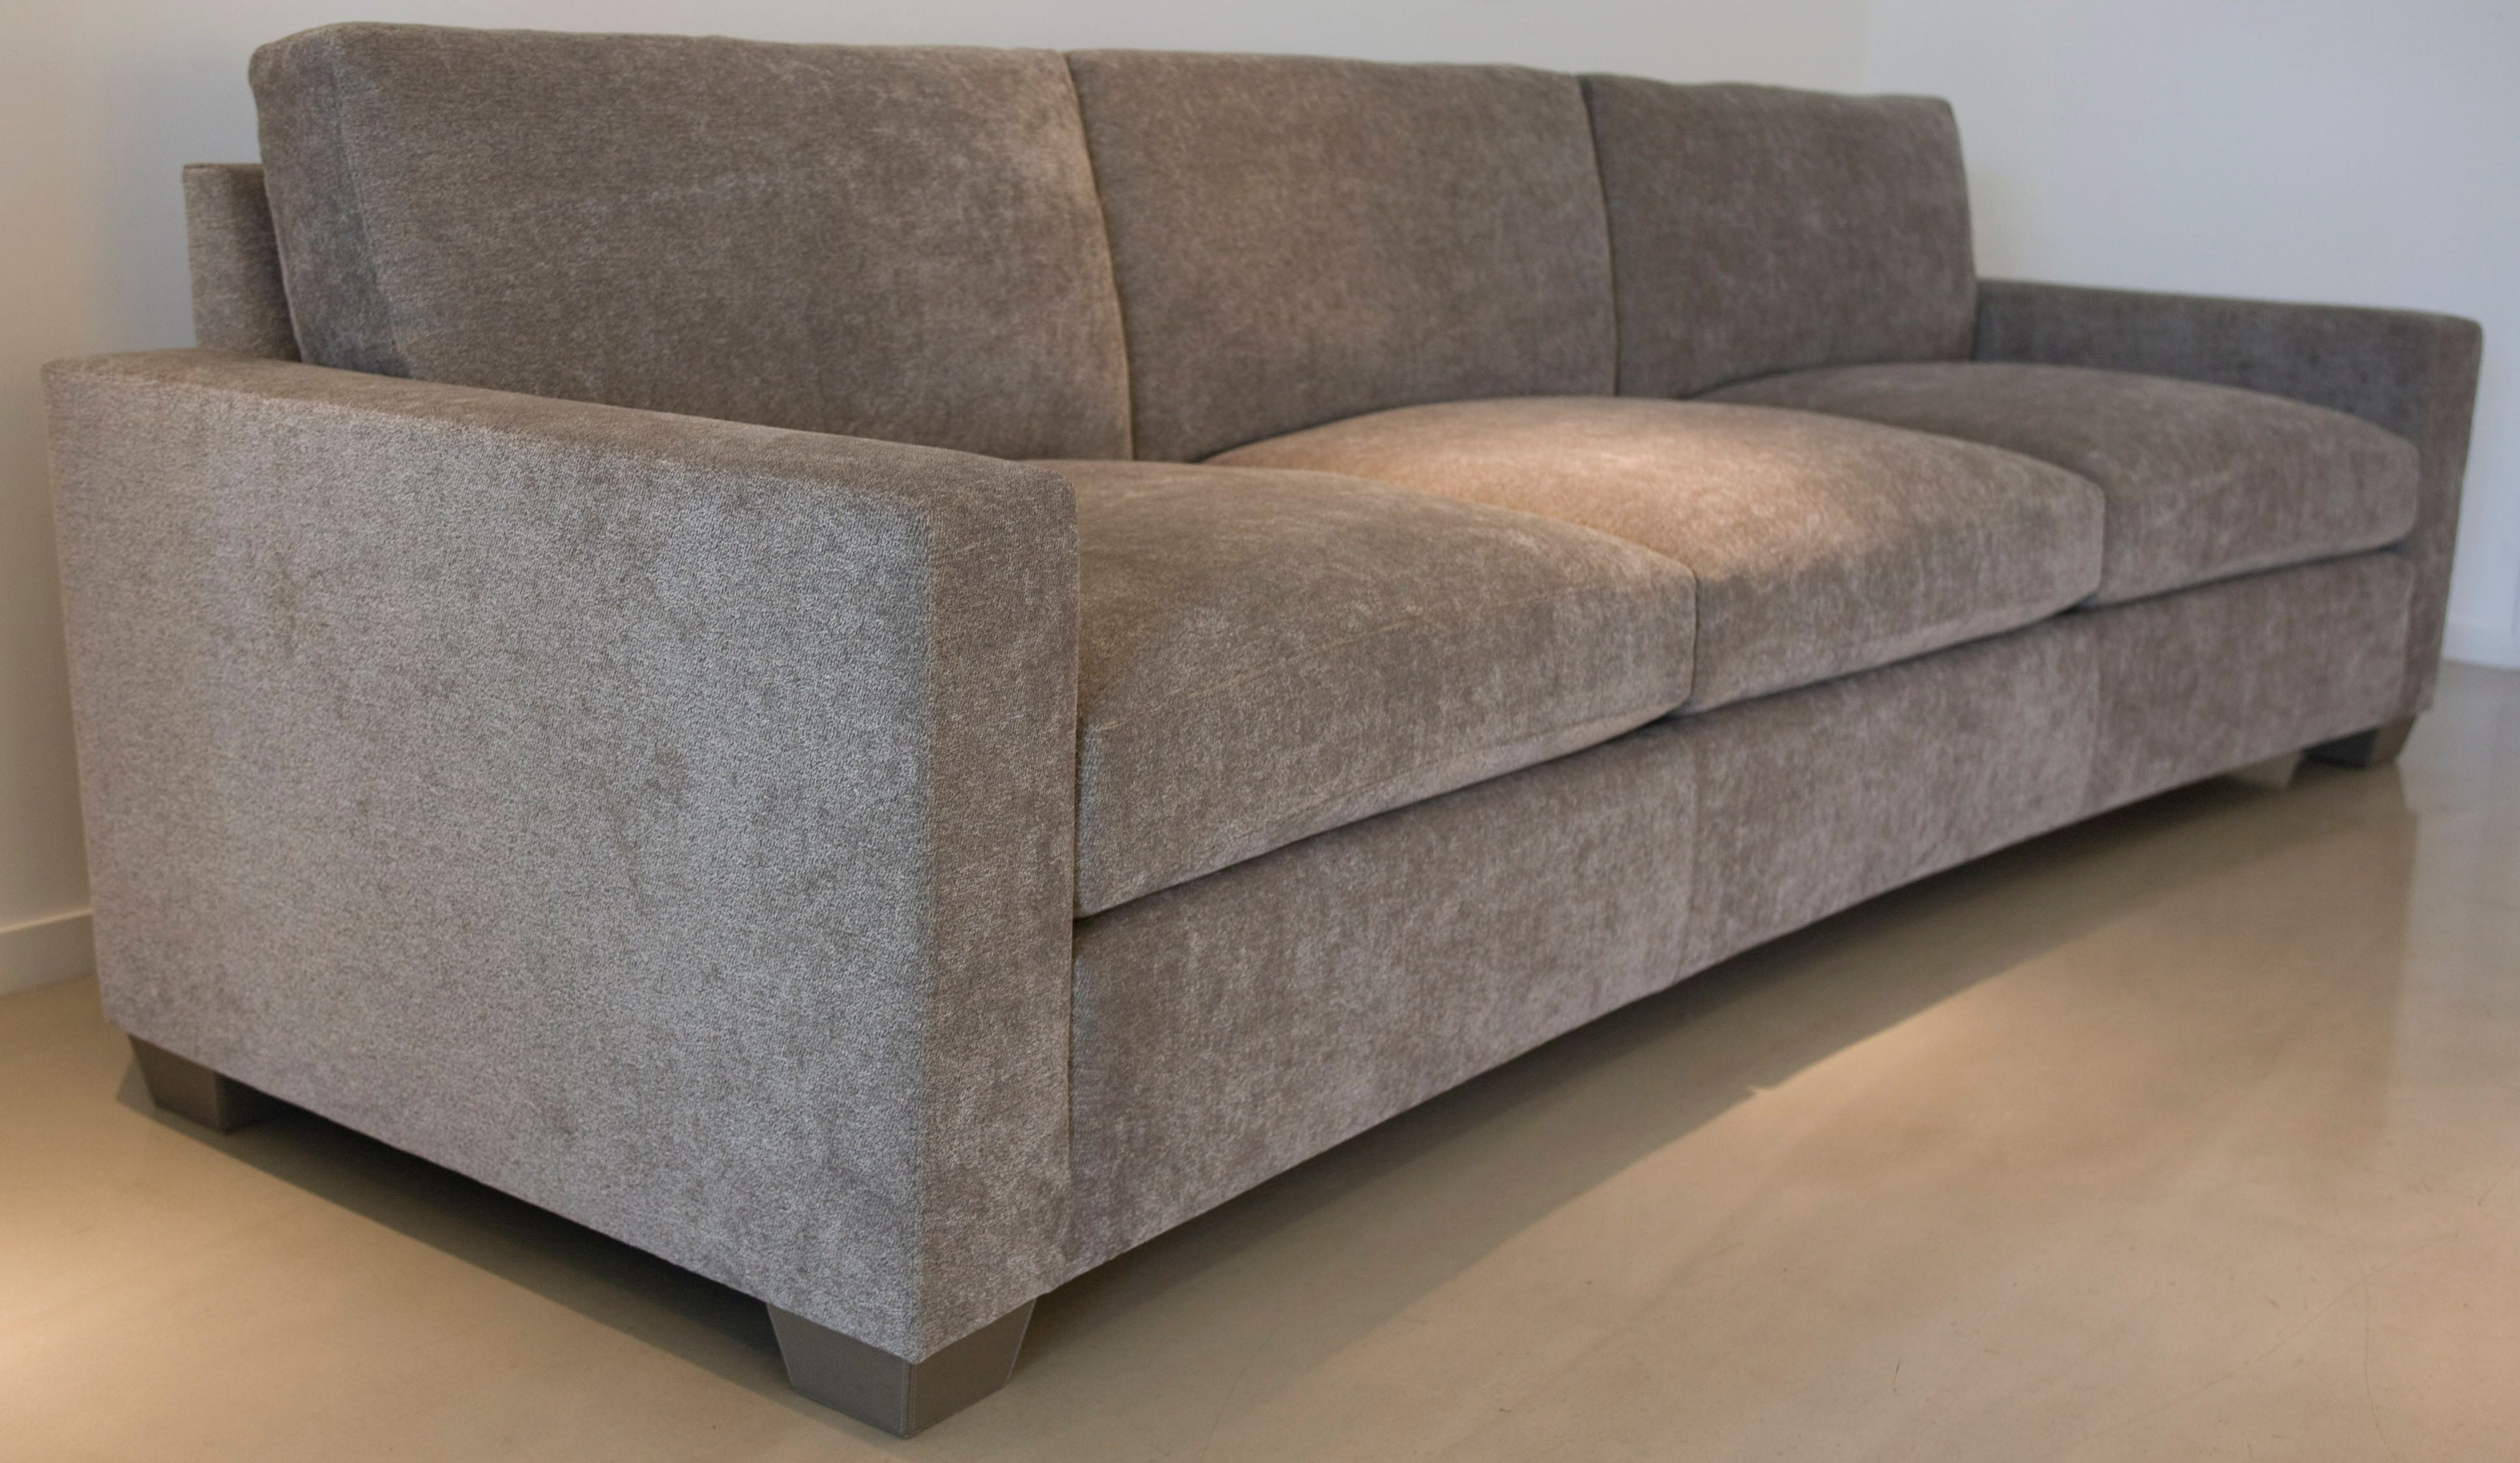 Curved JMF Sofa